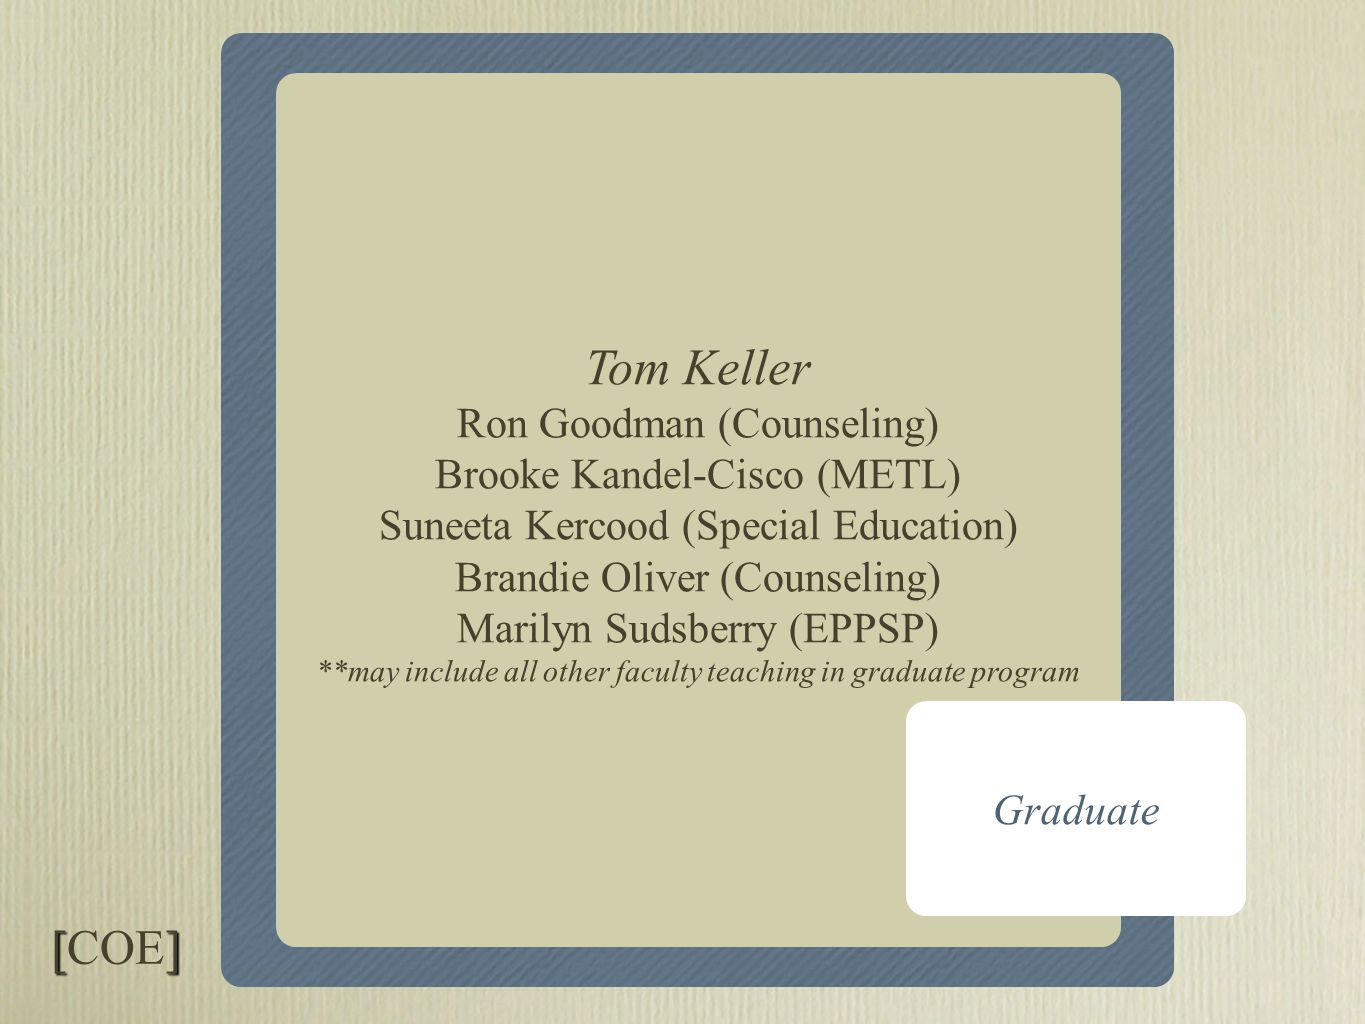 Core I & Core II Graduate Tom Keller Ron Goodman (Counseling) Brooke Kandel-Cisco (METL) Suneeta Kercood (Special Education) Brandie Oliver (Counseling) Marilyn Sudsberry (EPPSP) **may include all other faculty teaching in graduate program [] [COE]